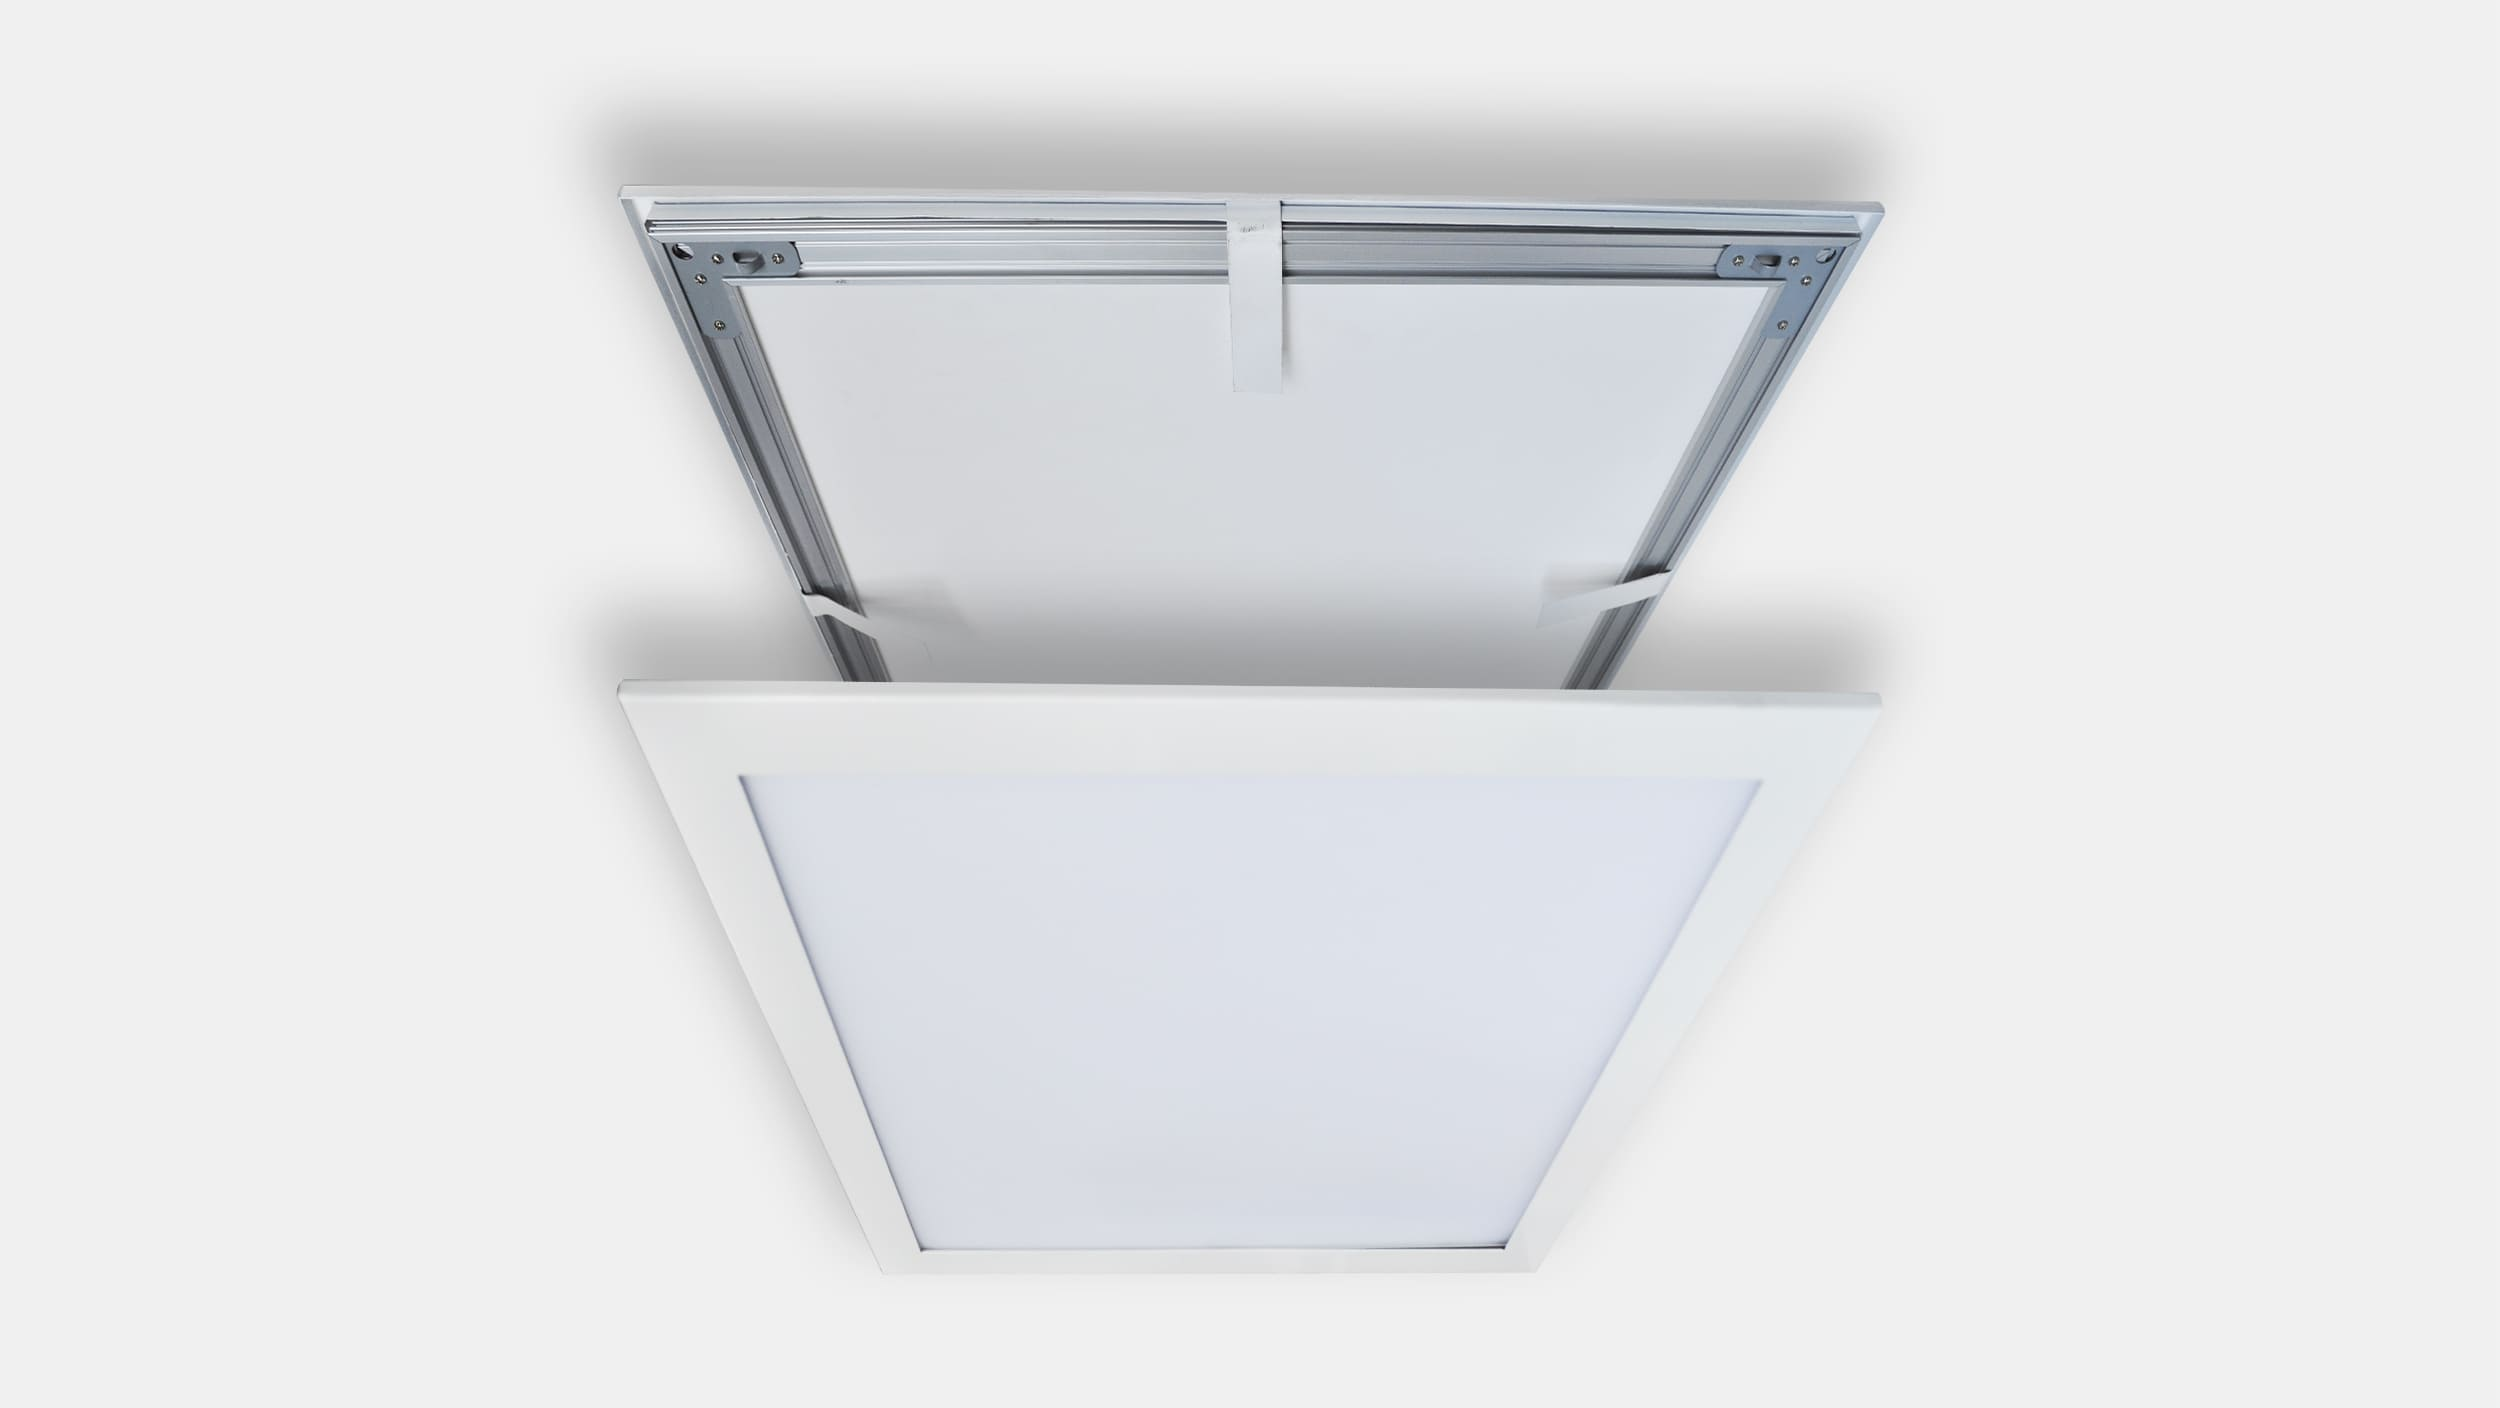 Accessory: Drywall ceiling frame